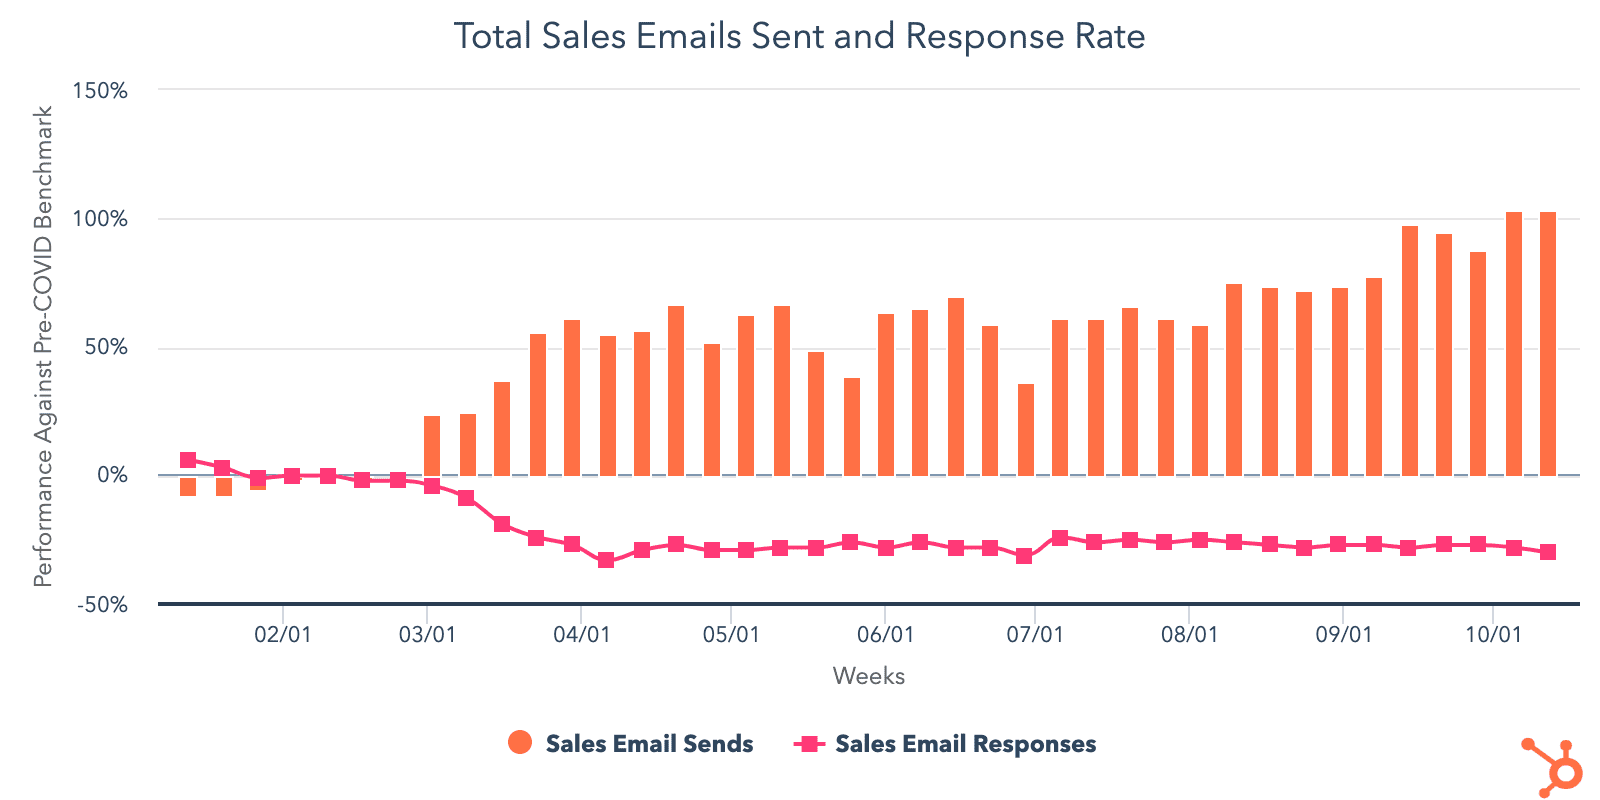 Email outreach responses in 2020